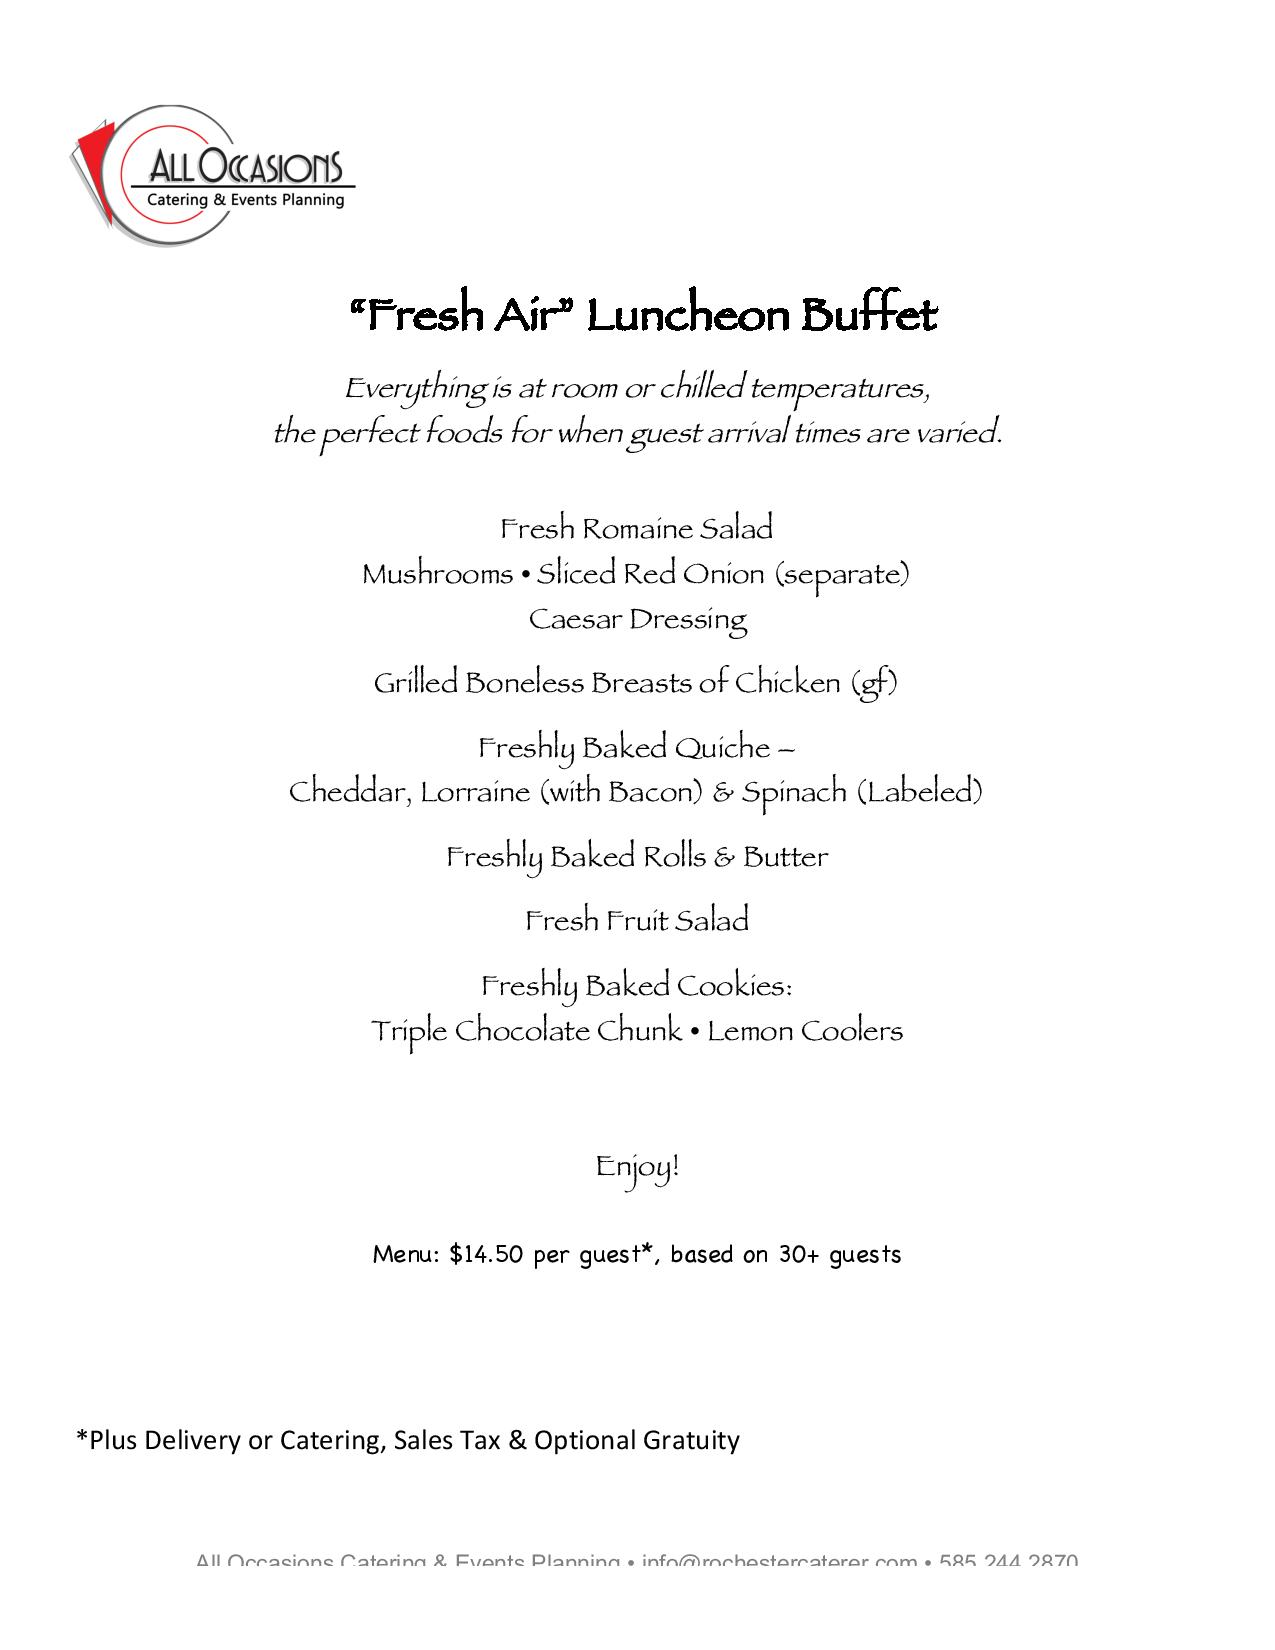 Luncheon Buffet, Corporate Value Menu